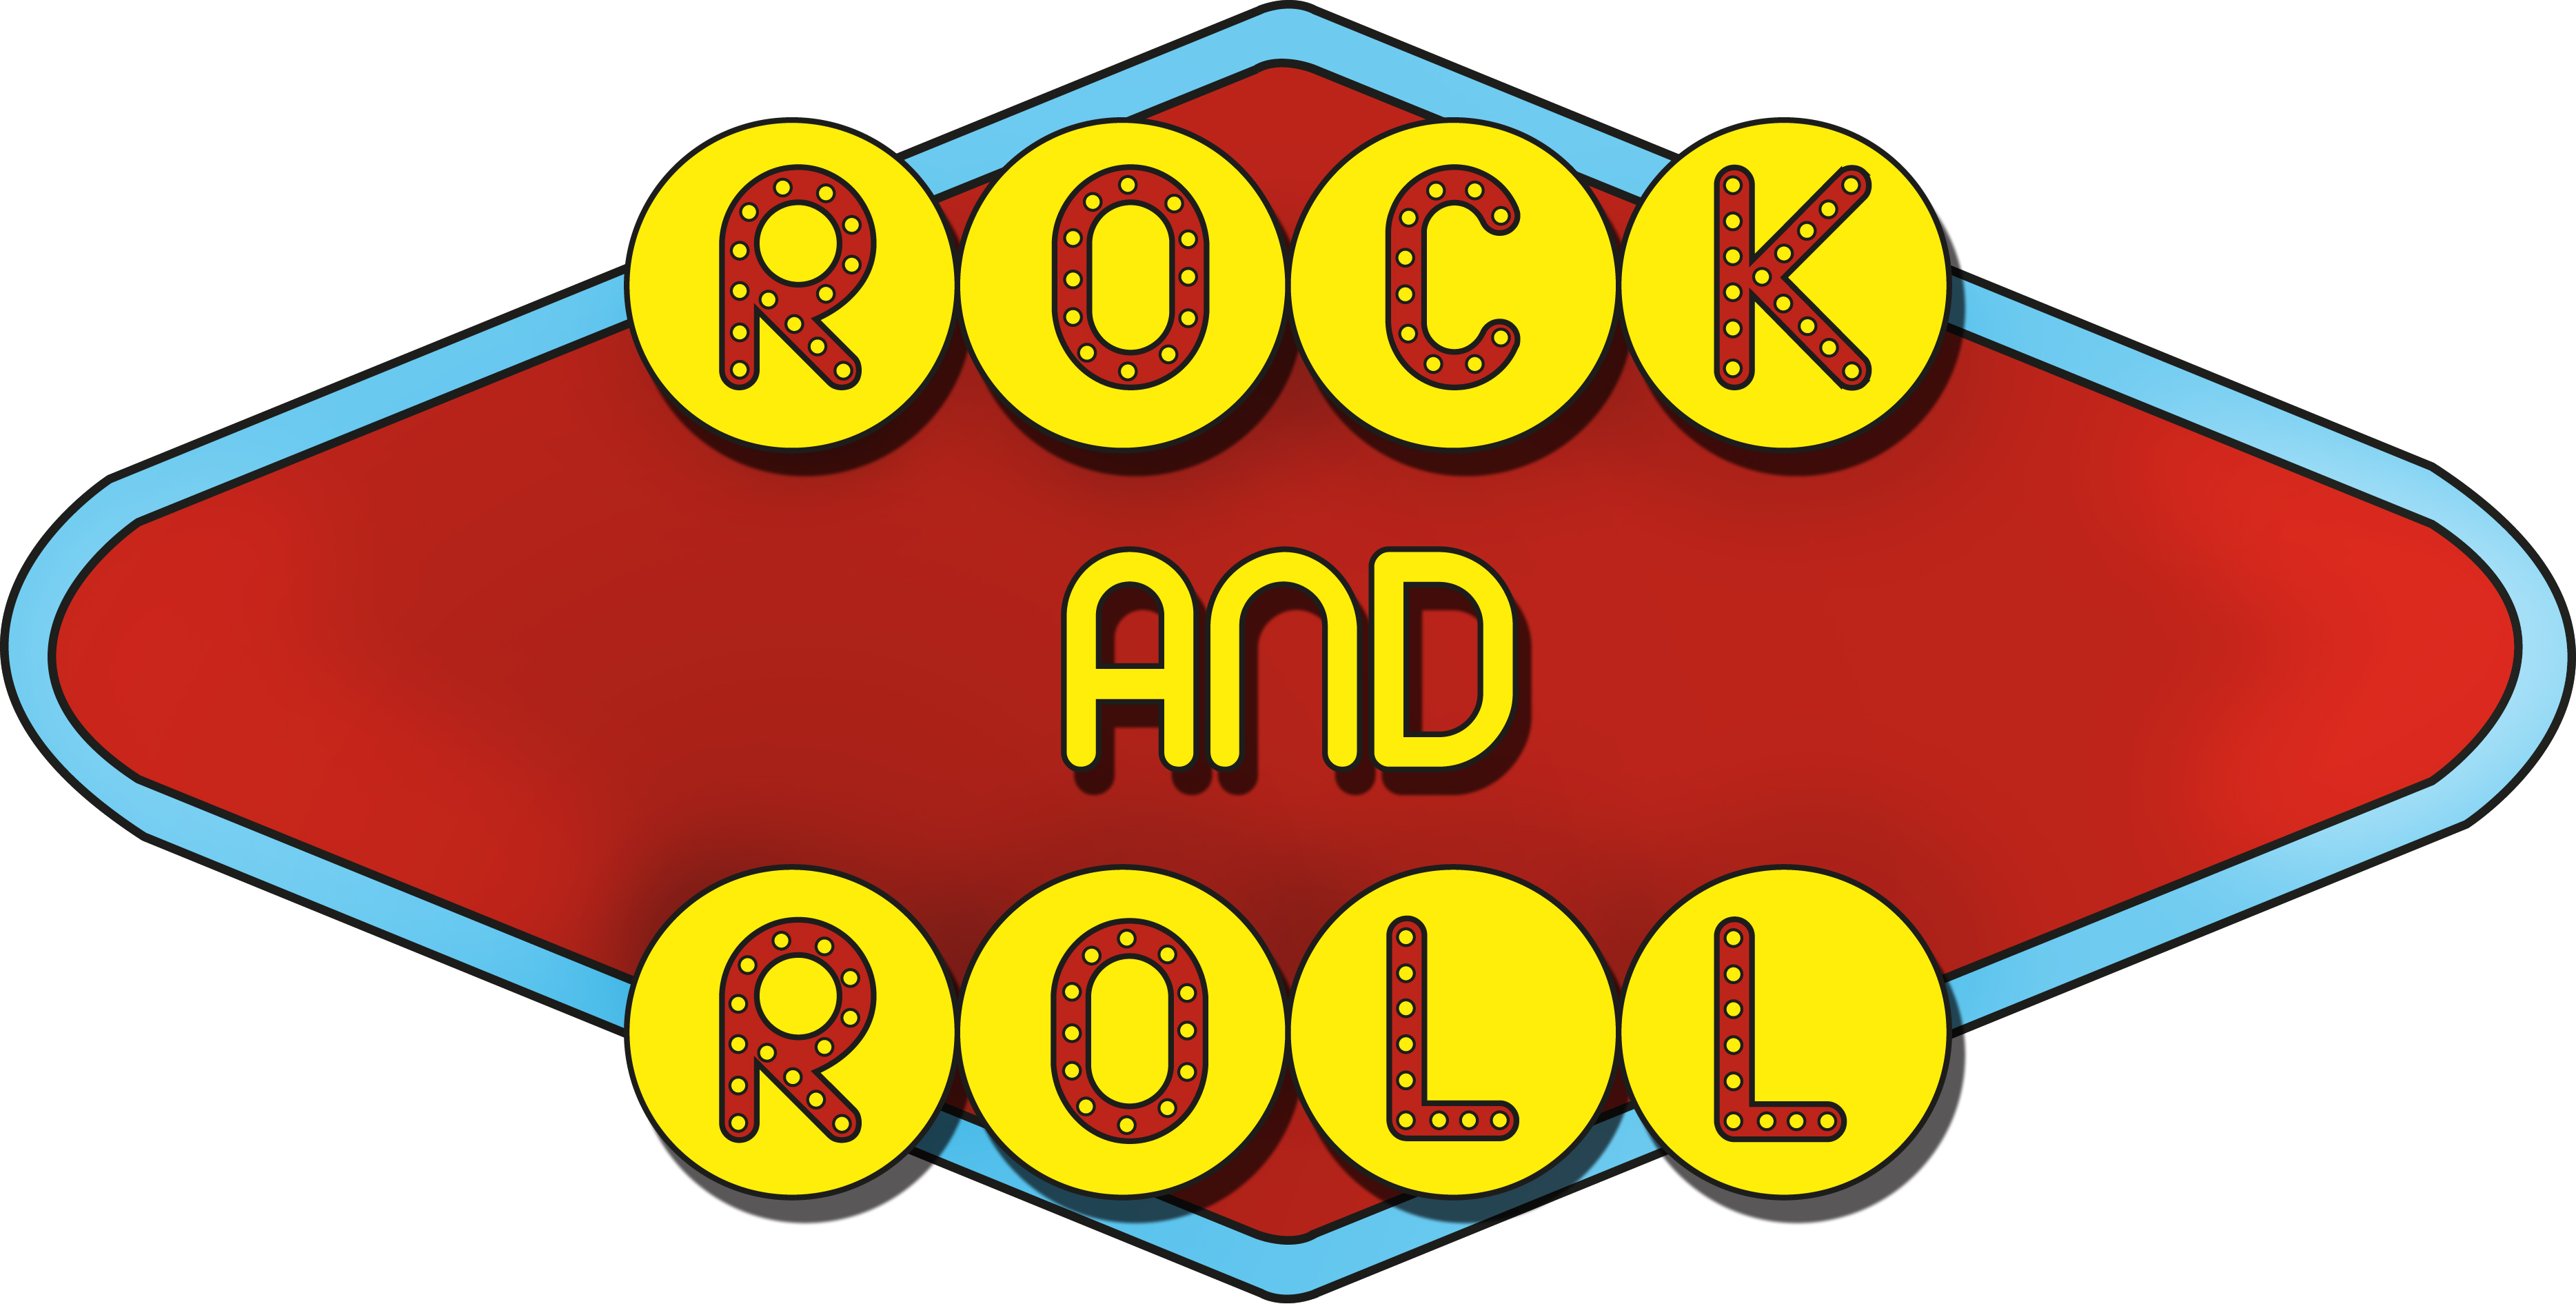 Rock And Roll Logo By Ryanboy On Deviant-Rock And Roll Logo By Ryanboy On Deviantart-11